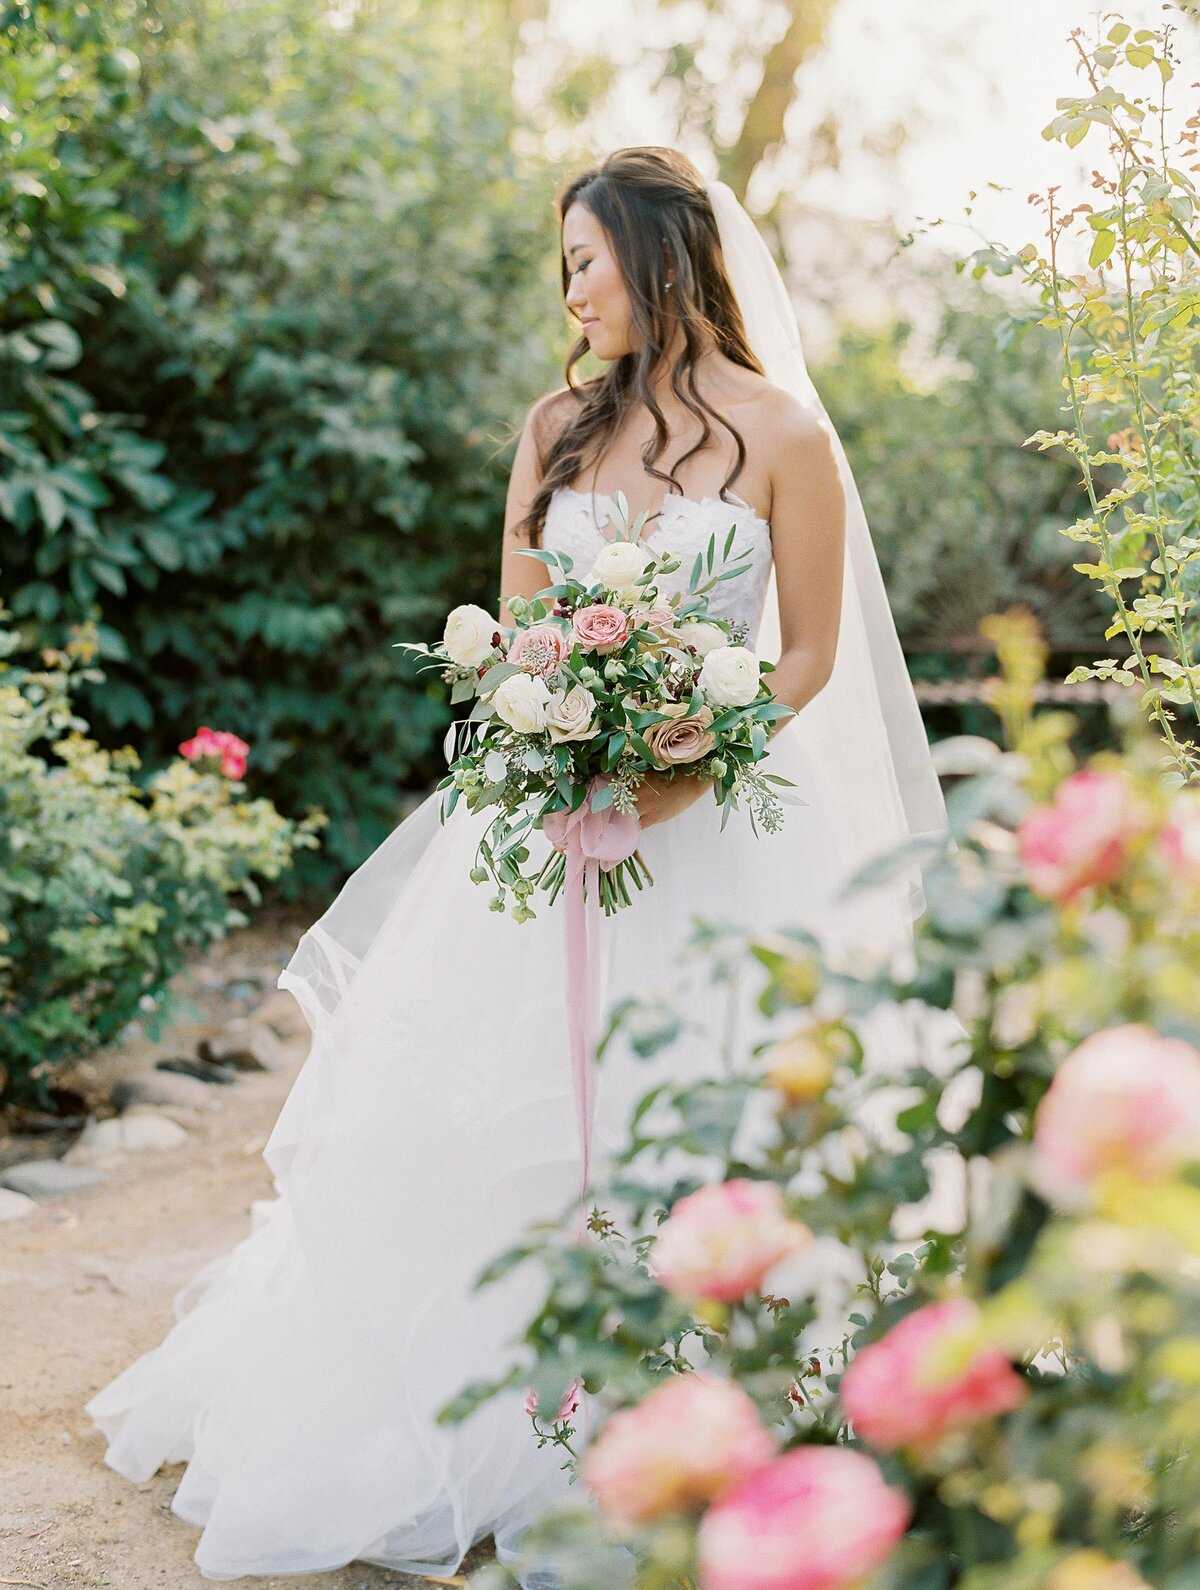 Dani Toscano Photography — Maravilla Gardens Wedding-47